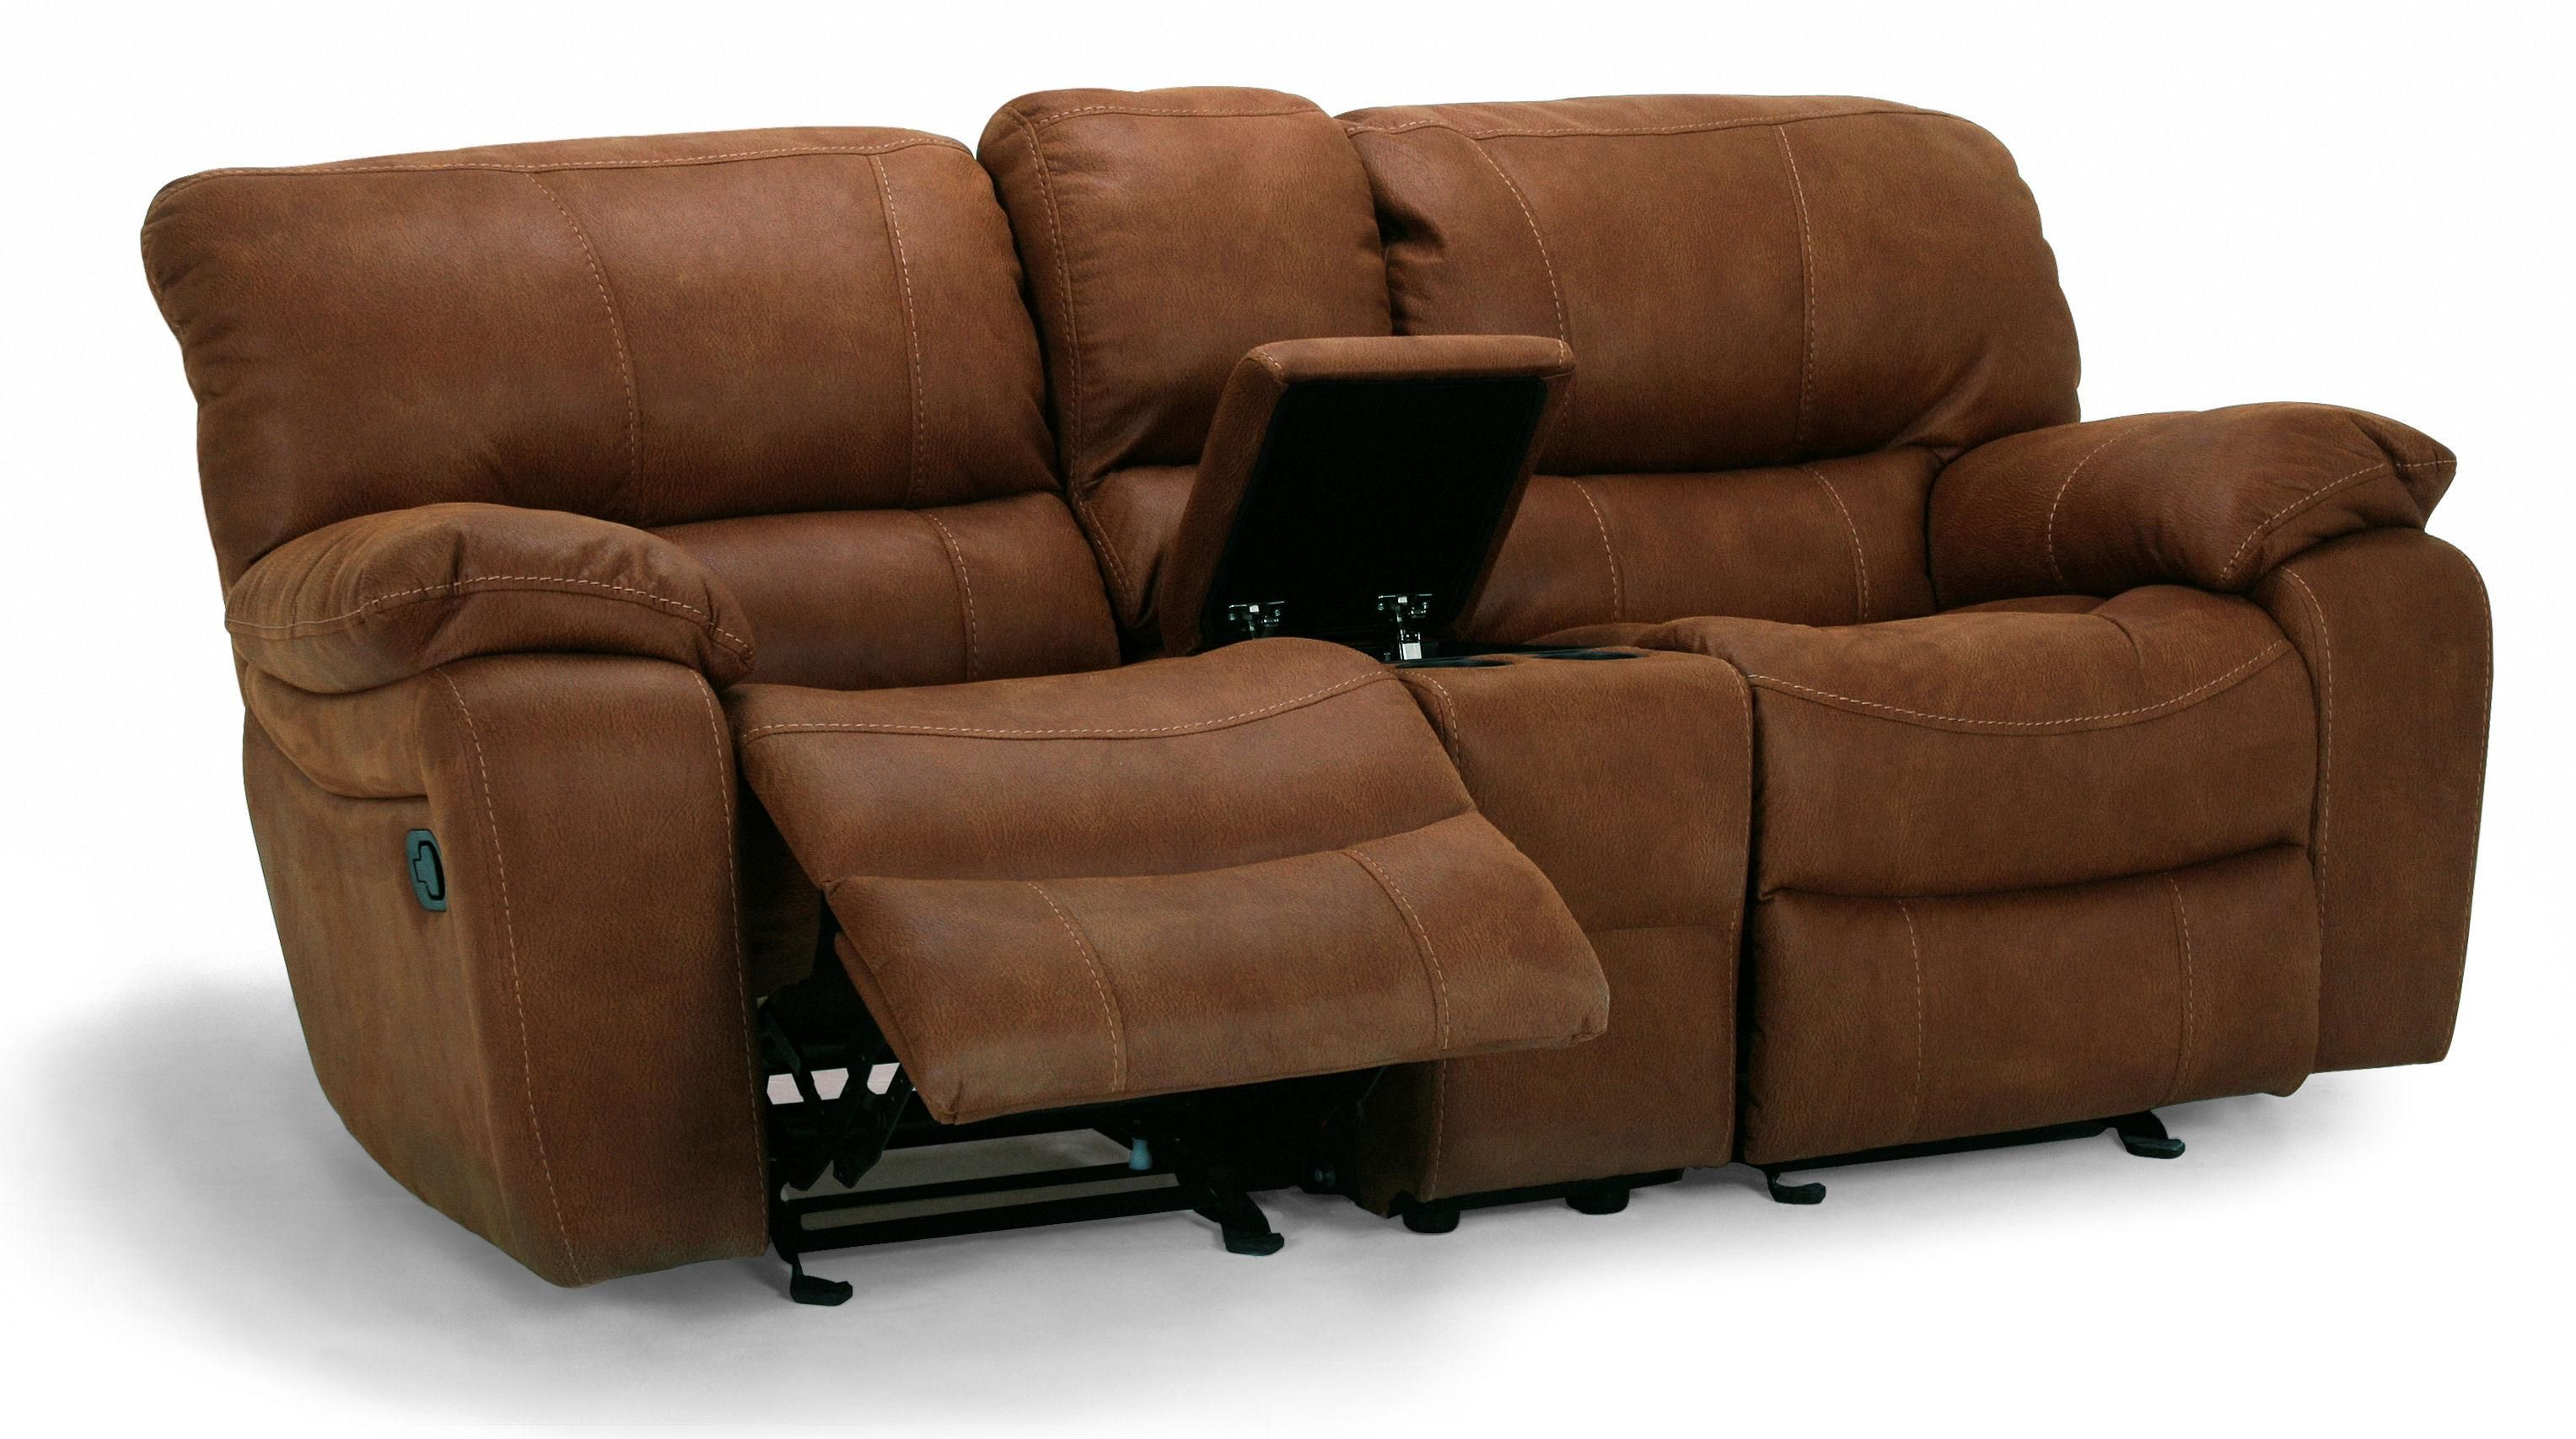 Flexsteel Furniture Latitudes Grandview Collection featuring double reclining loveseat with center console double reclining  sc 1 st  Pinterest & Flexsteel Furniture: Latitudes Grandview Collection featuring ... islam-shia.org